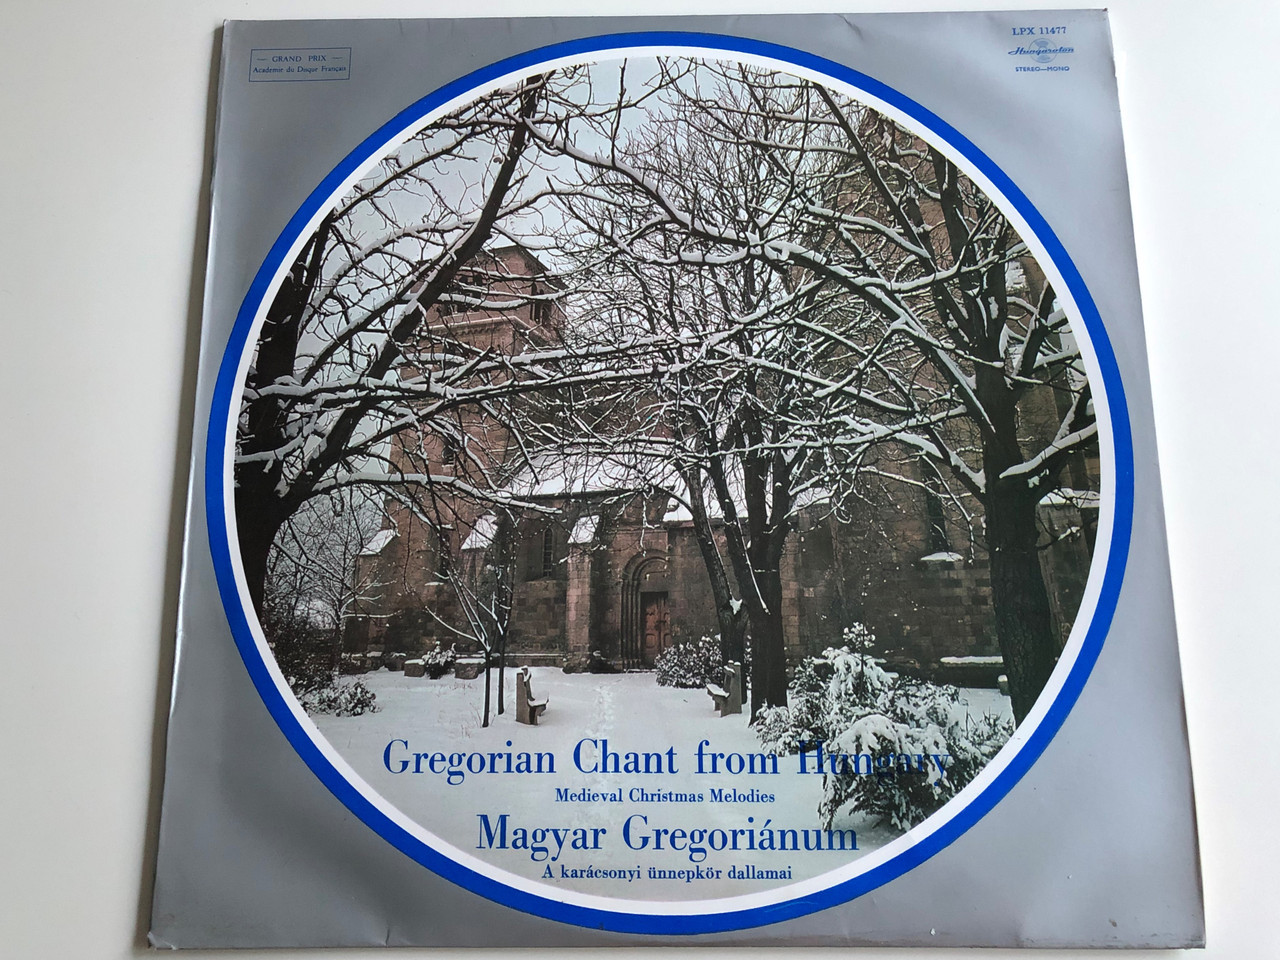 Gregorian Christmas Chants.Gregorian Chant From Hungary Medieval Christmas Melodies Magyar Gregorianum Hungaroton Lp Stereo Mono Lpx 11477